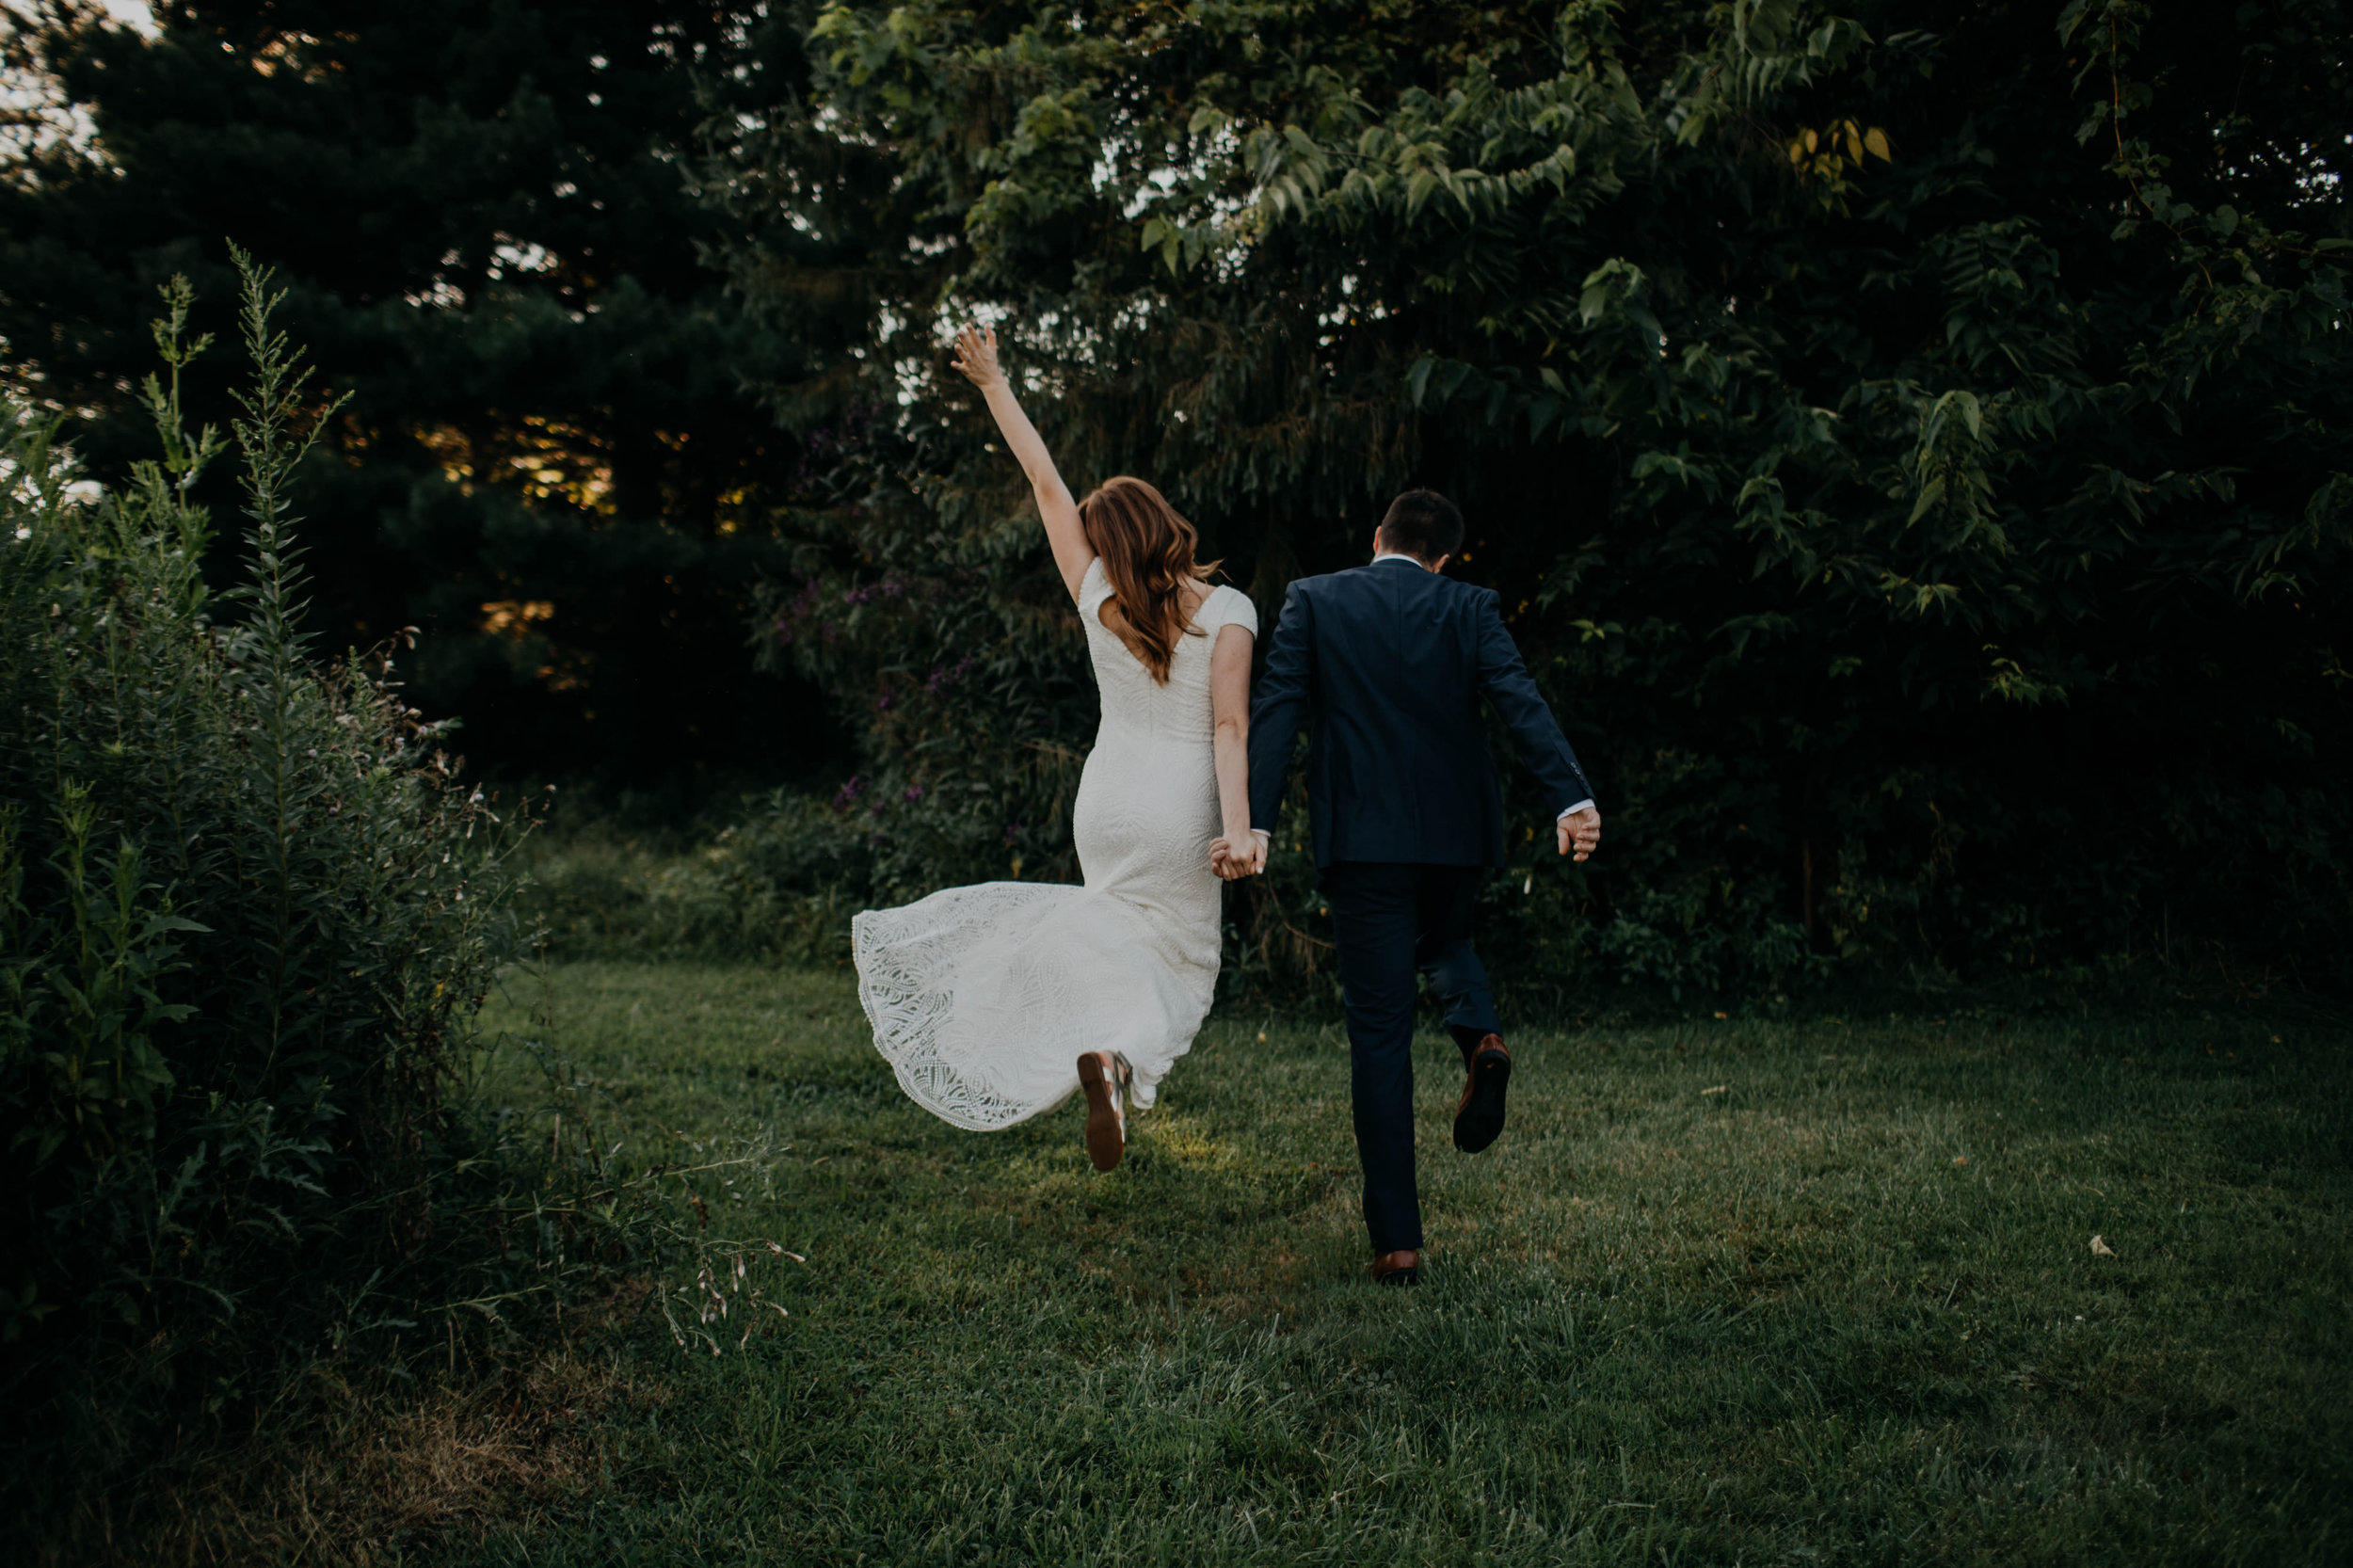 untraditional intimate bed and breakfast wedding orchard house bed and breakfast wedding granville ohio119.jpg